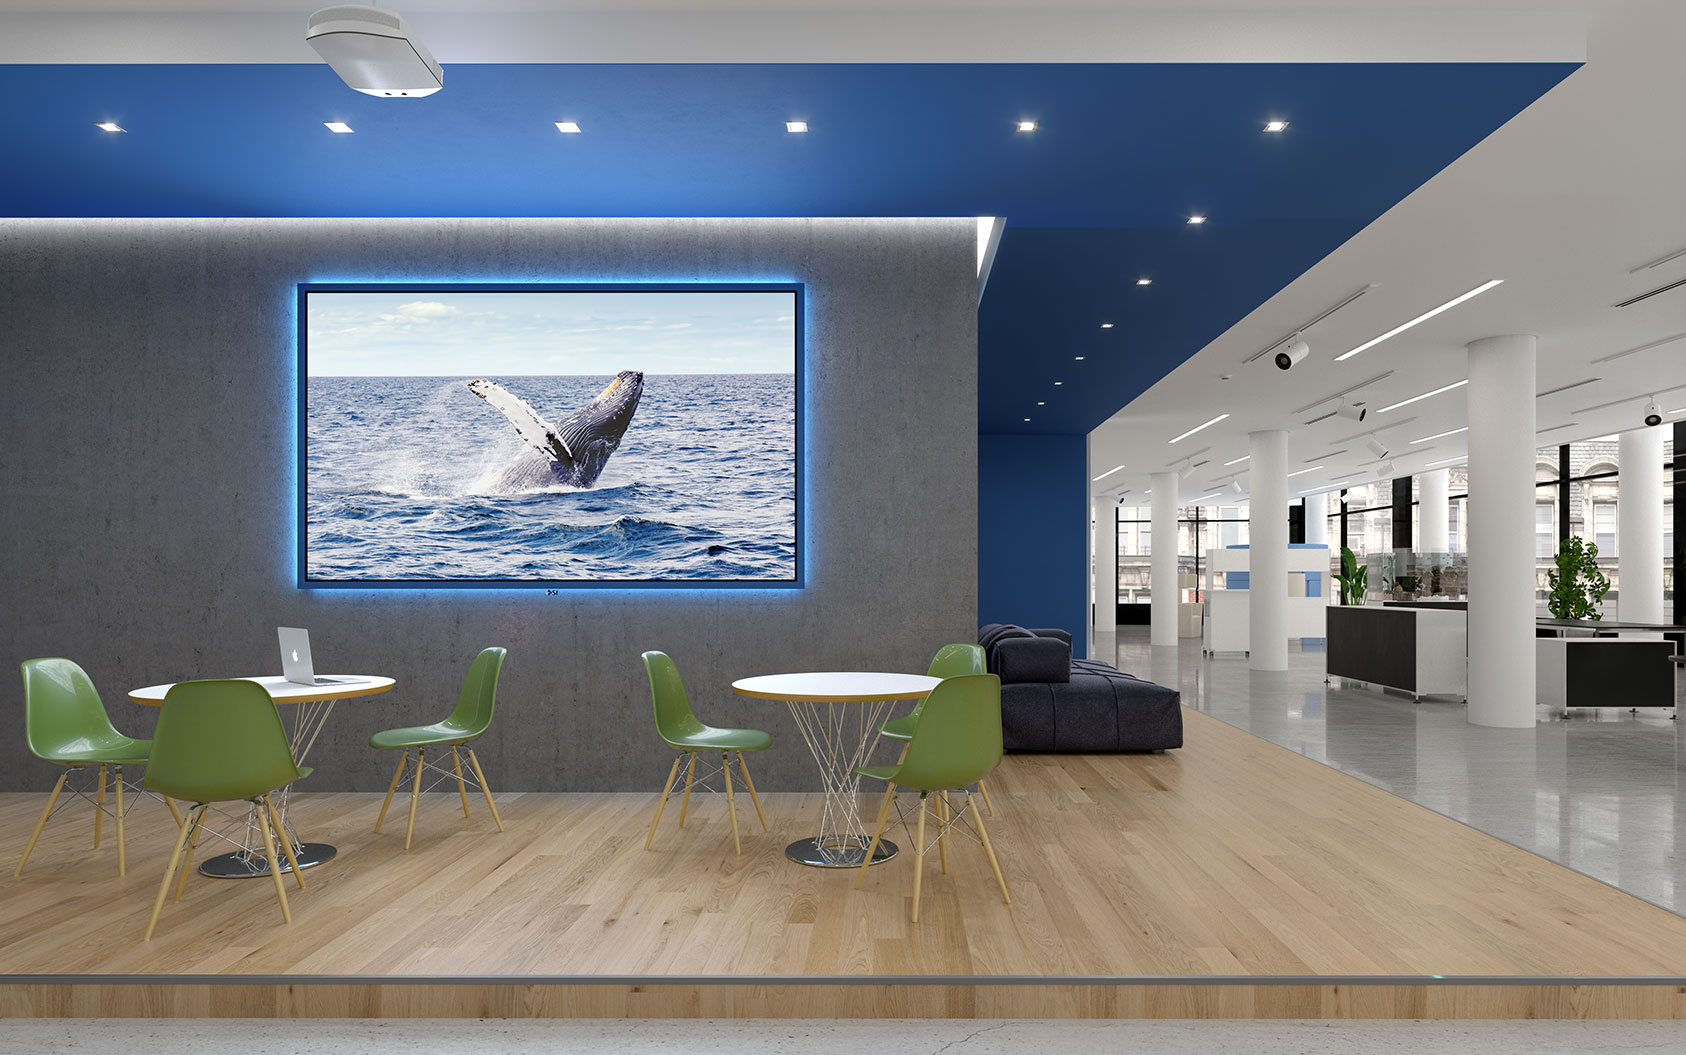 Commercial Projection Screen Installation